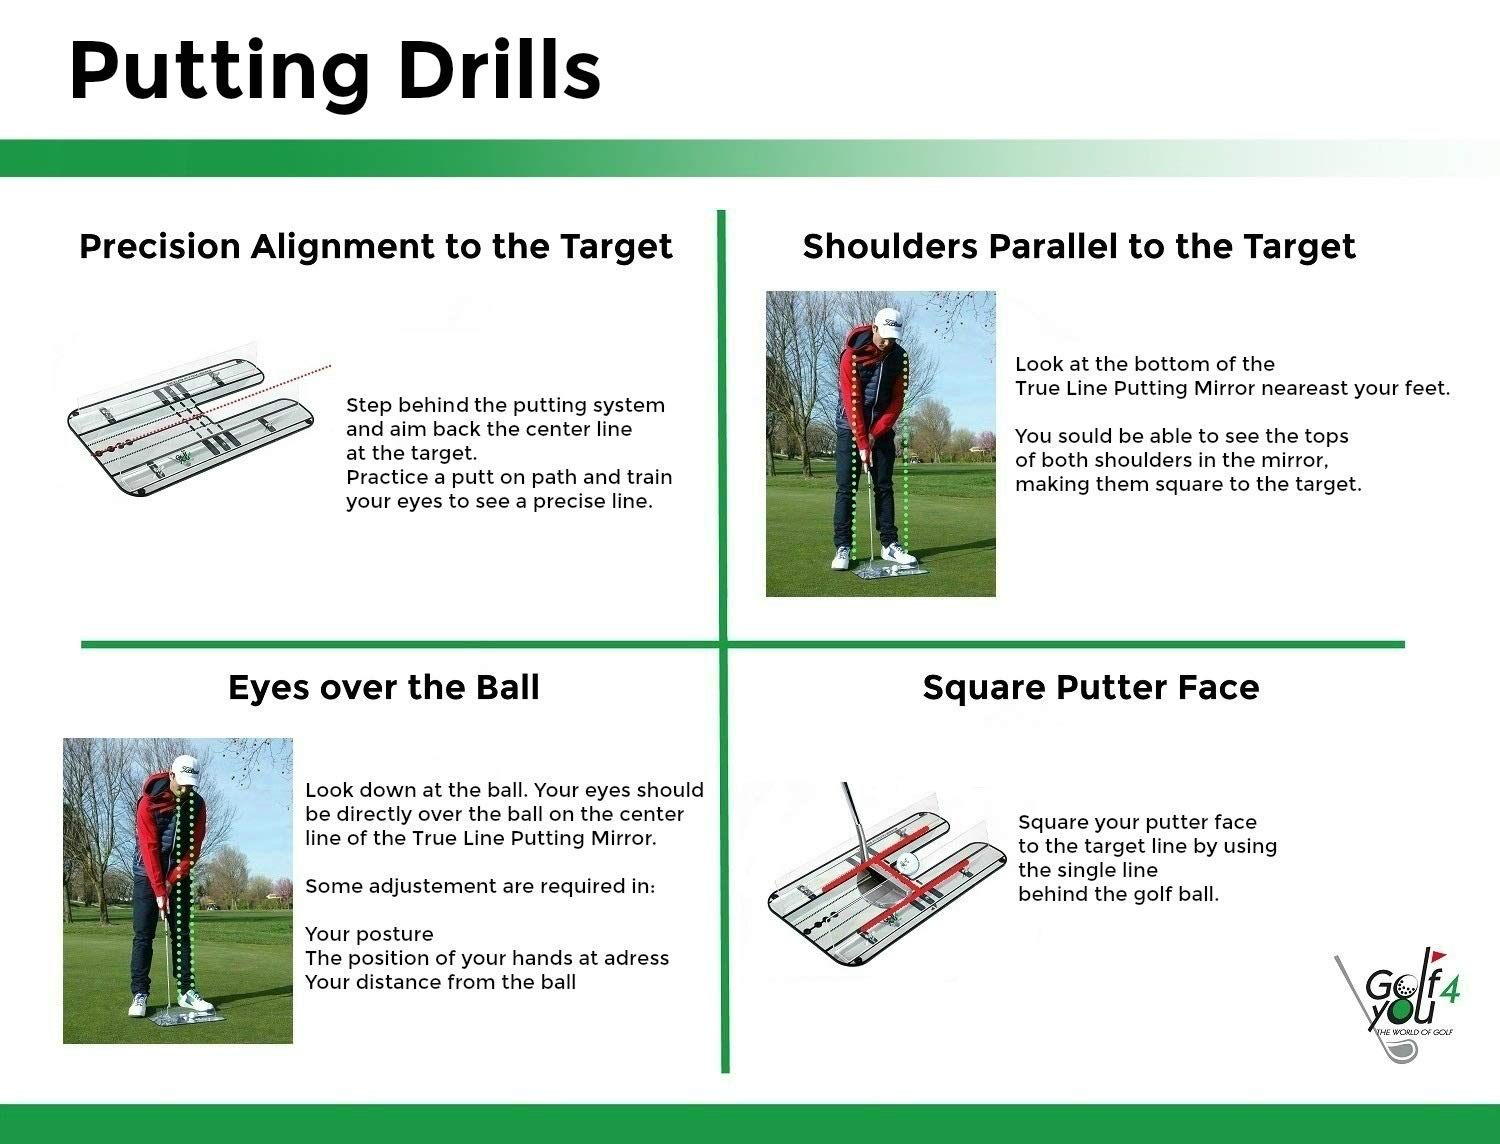 Golf Training Aid, Putting Set - XL Alignment Mirror Design with Our Exclusive Clear Adjustable Guide Rails ''True Line Putting Mirror'' - Leading Practice Aid for On-Line, Consistent Putting Stroke by GOLF4 YOU THE WORLD OF GOLF (Image #7)